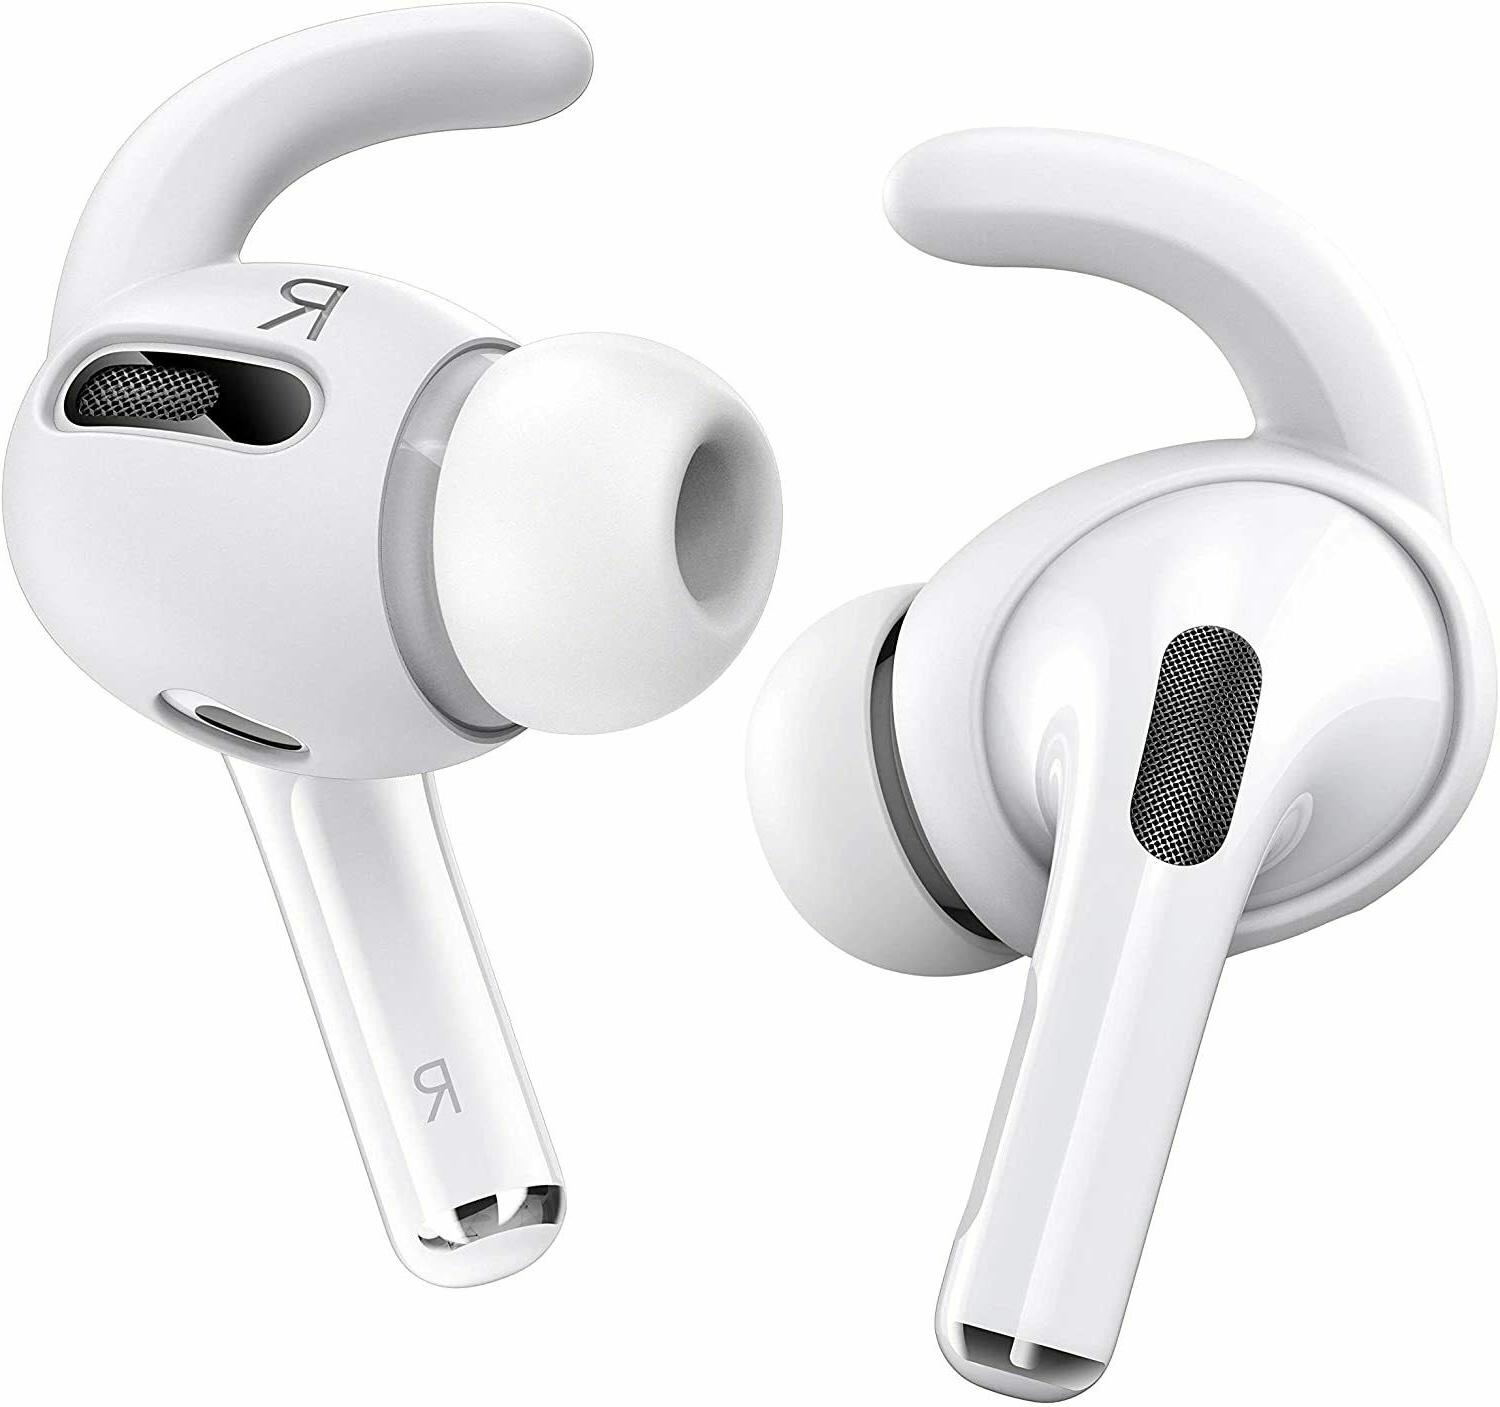 3 pairs airpods pro ear hook tips